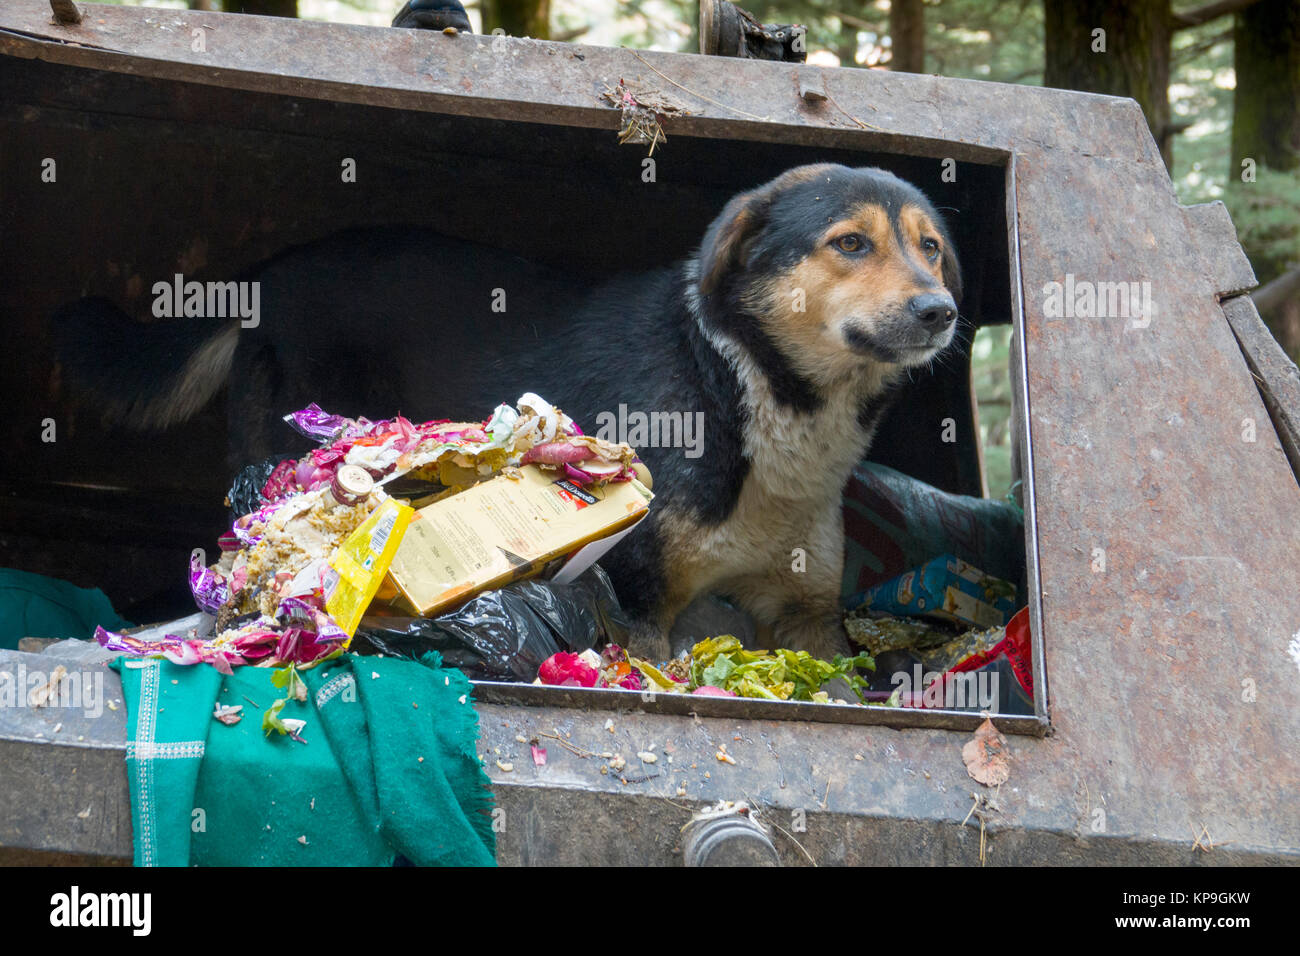 Street dog scavenging food from dumpster in Mcleod Ganj, India - Stock Image